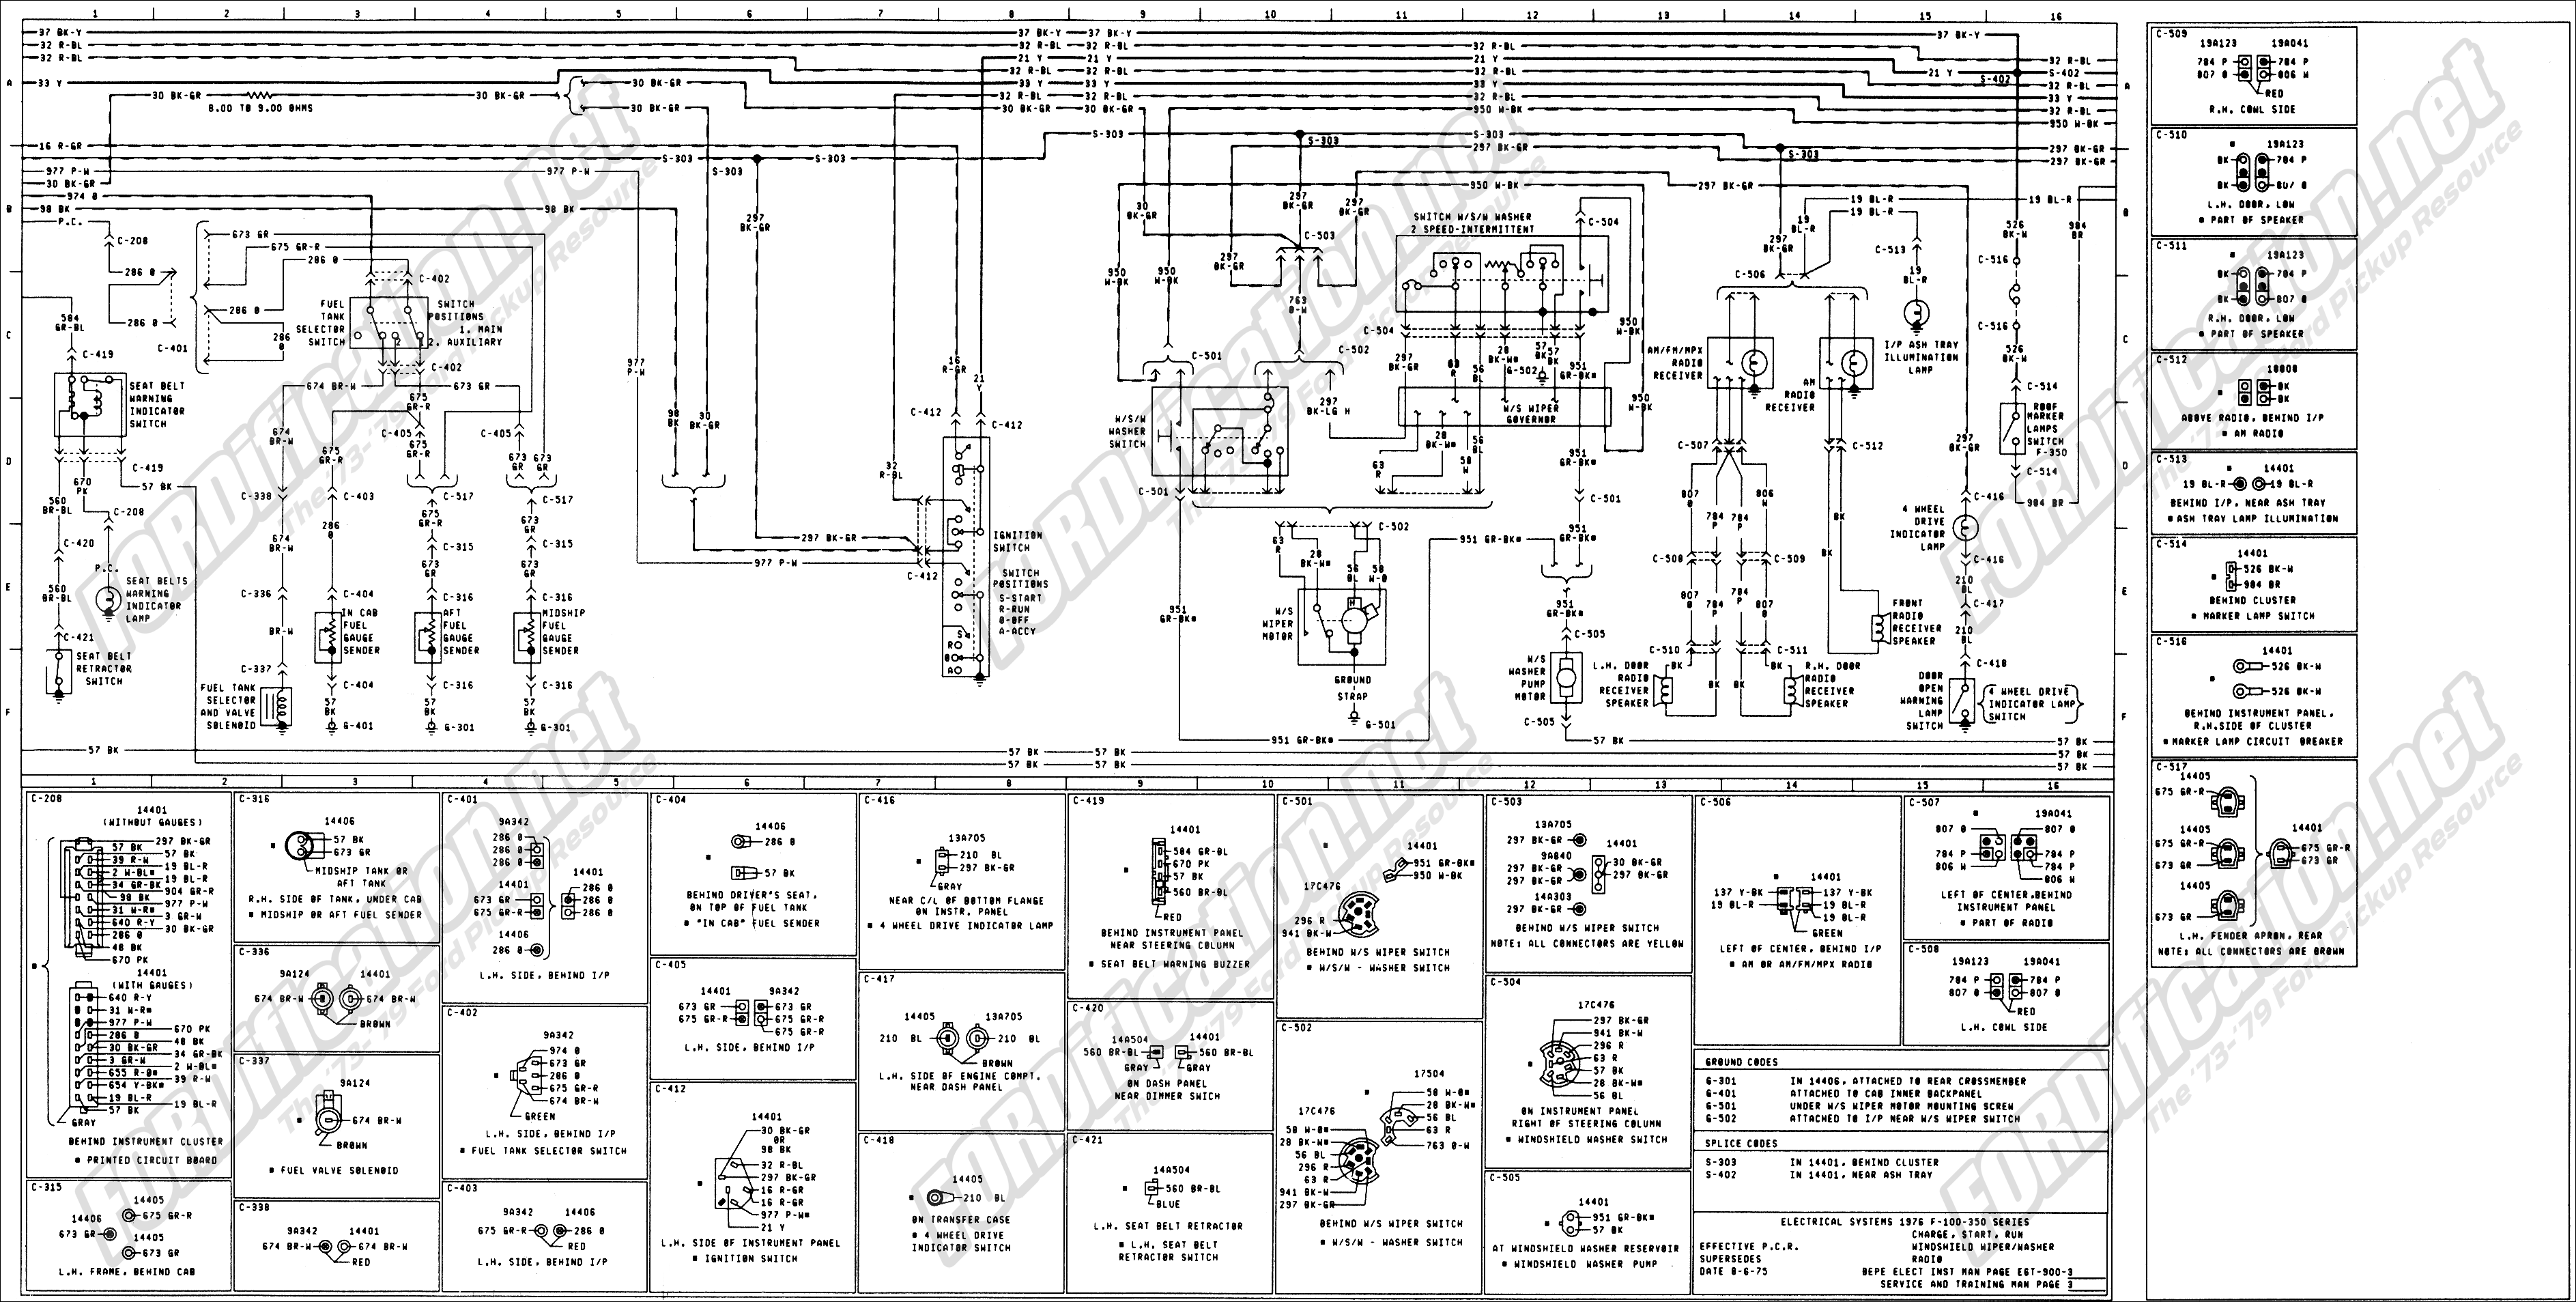 wiring_76master_3of9 1973 1979 ford truck wiring diagrams & schematics fordification net 2016 f250 fifth wheel wiring harness at crackthecode.co